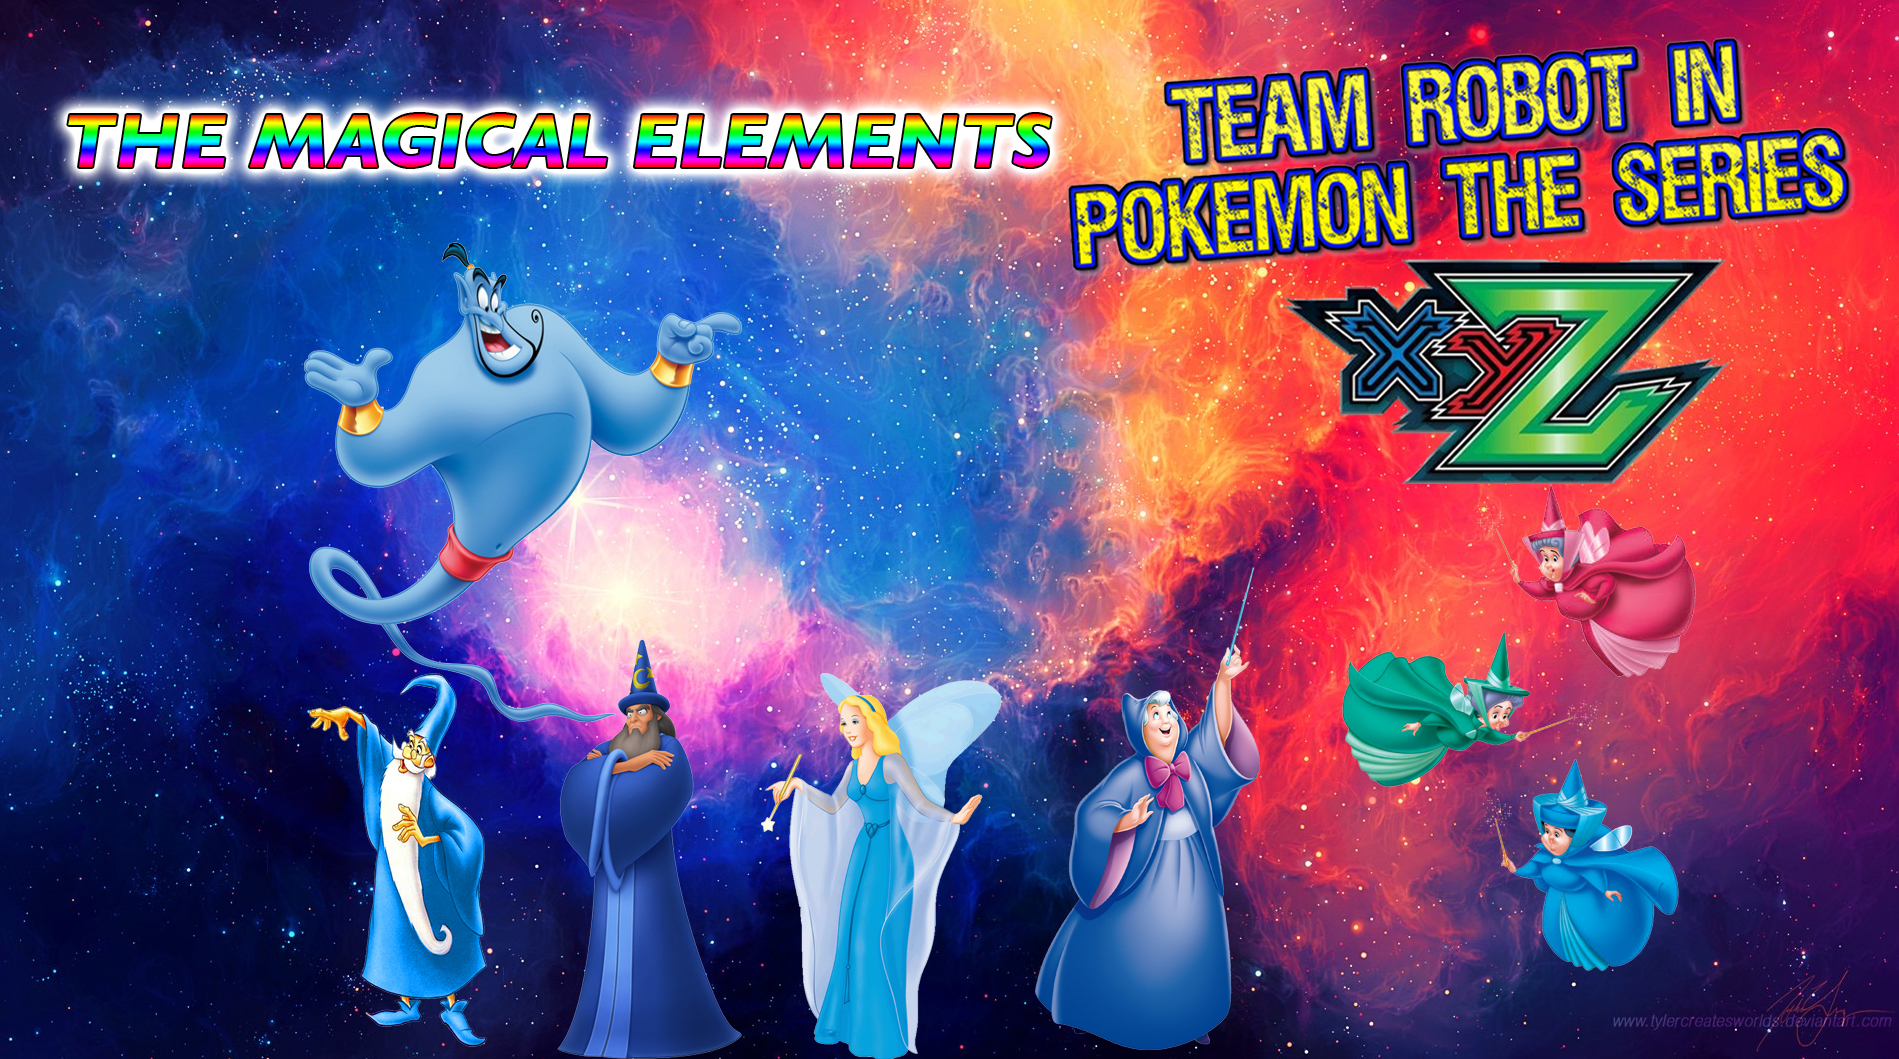 image team robot in pokemon xy z the magical elements jpg pooh s